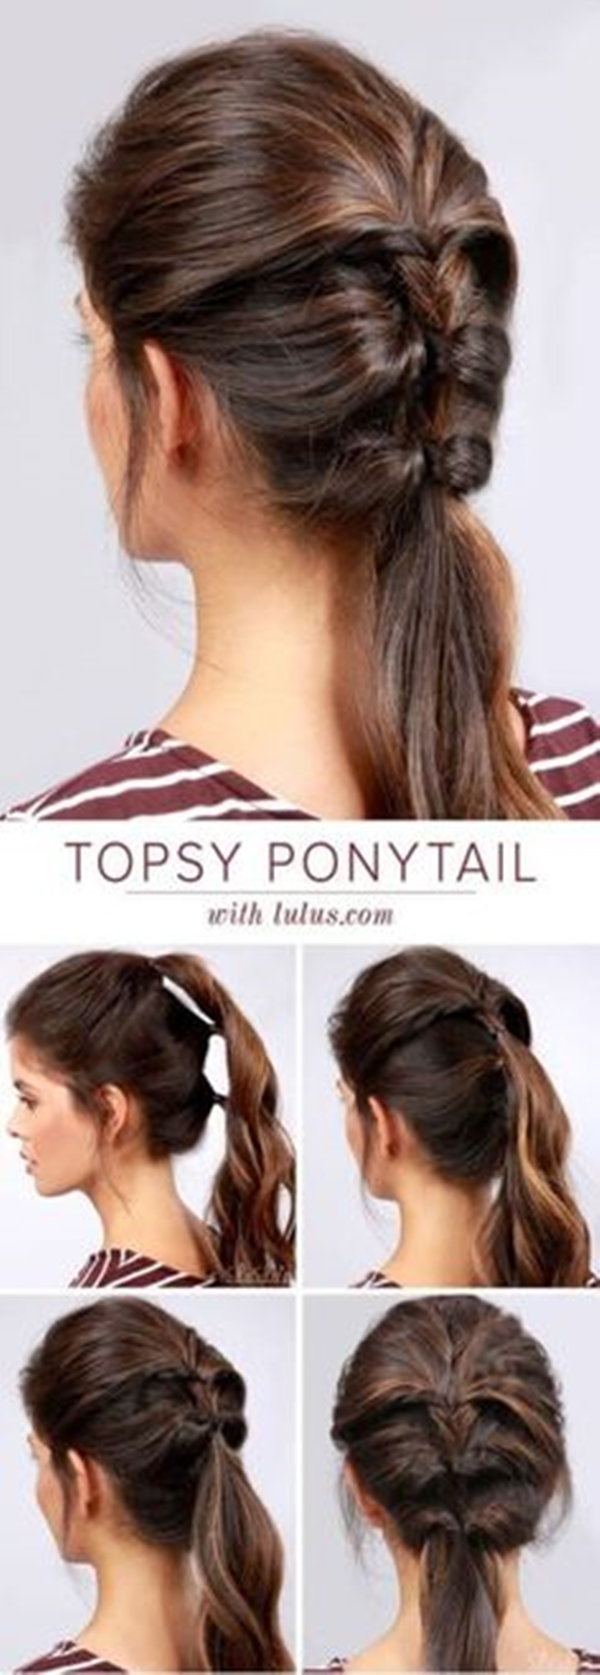 12 Simple and Sexy Office Hairstyles for Women - Buzz 12